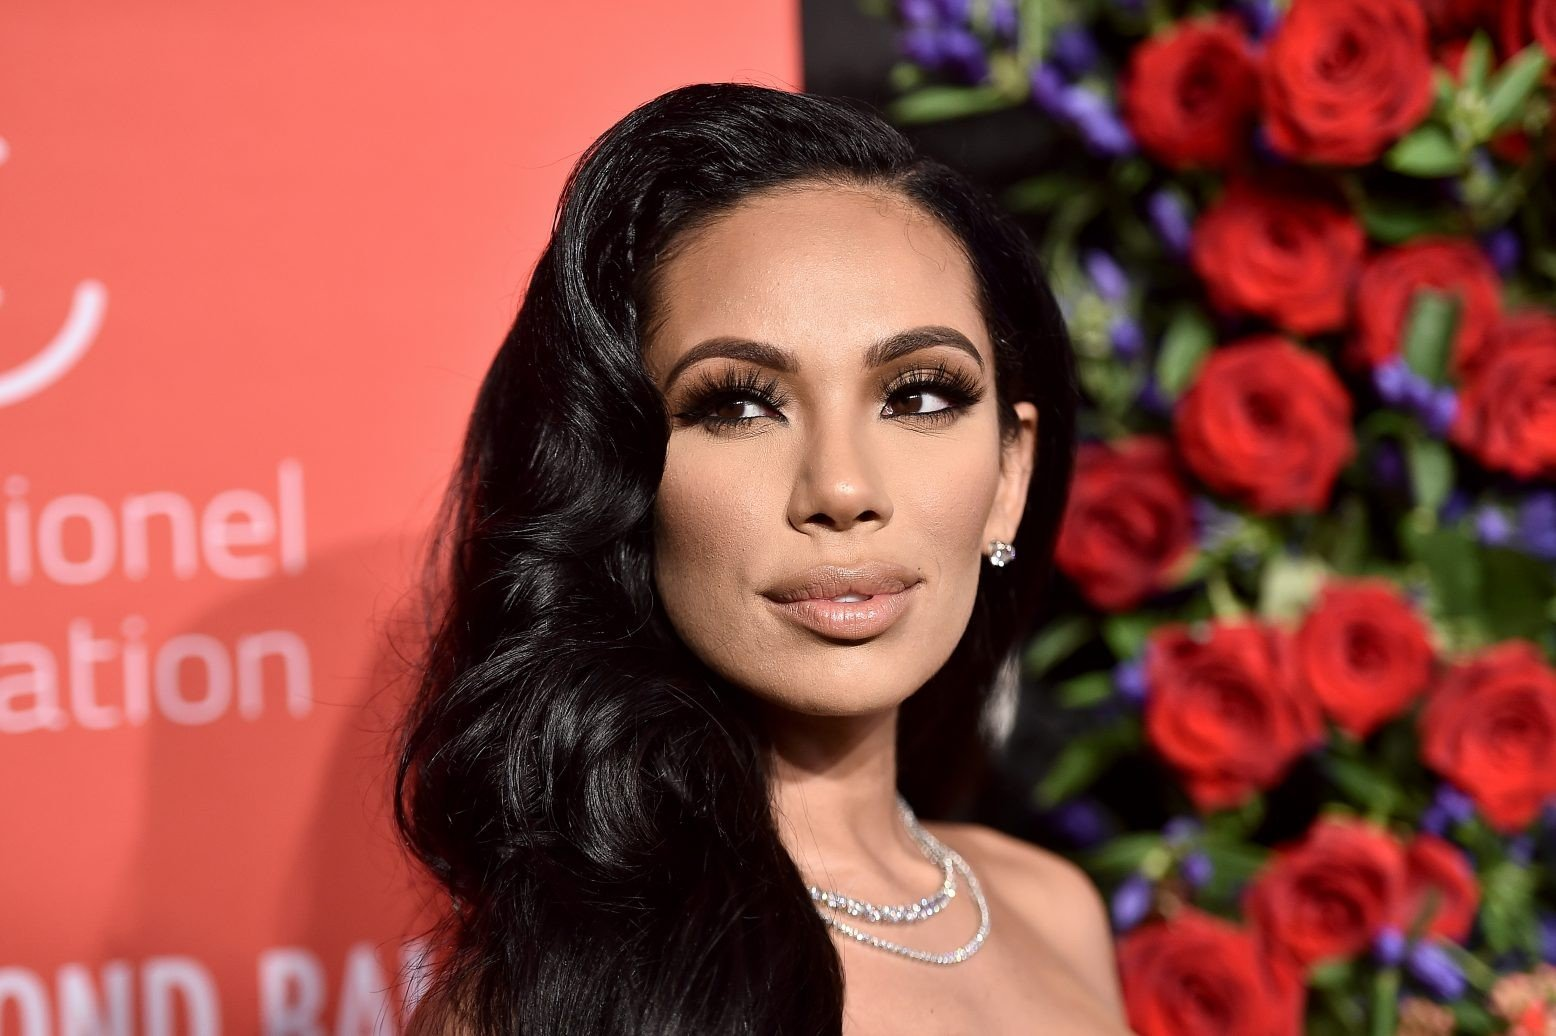 Erica Mena Flaunts Her Curves In This Skintight Outfit - See Her Rocking A New Look Here